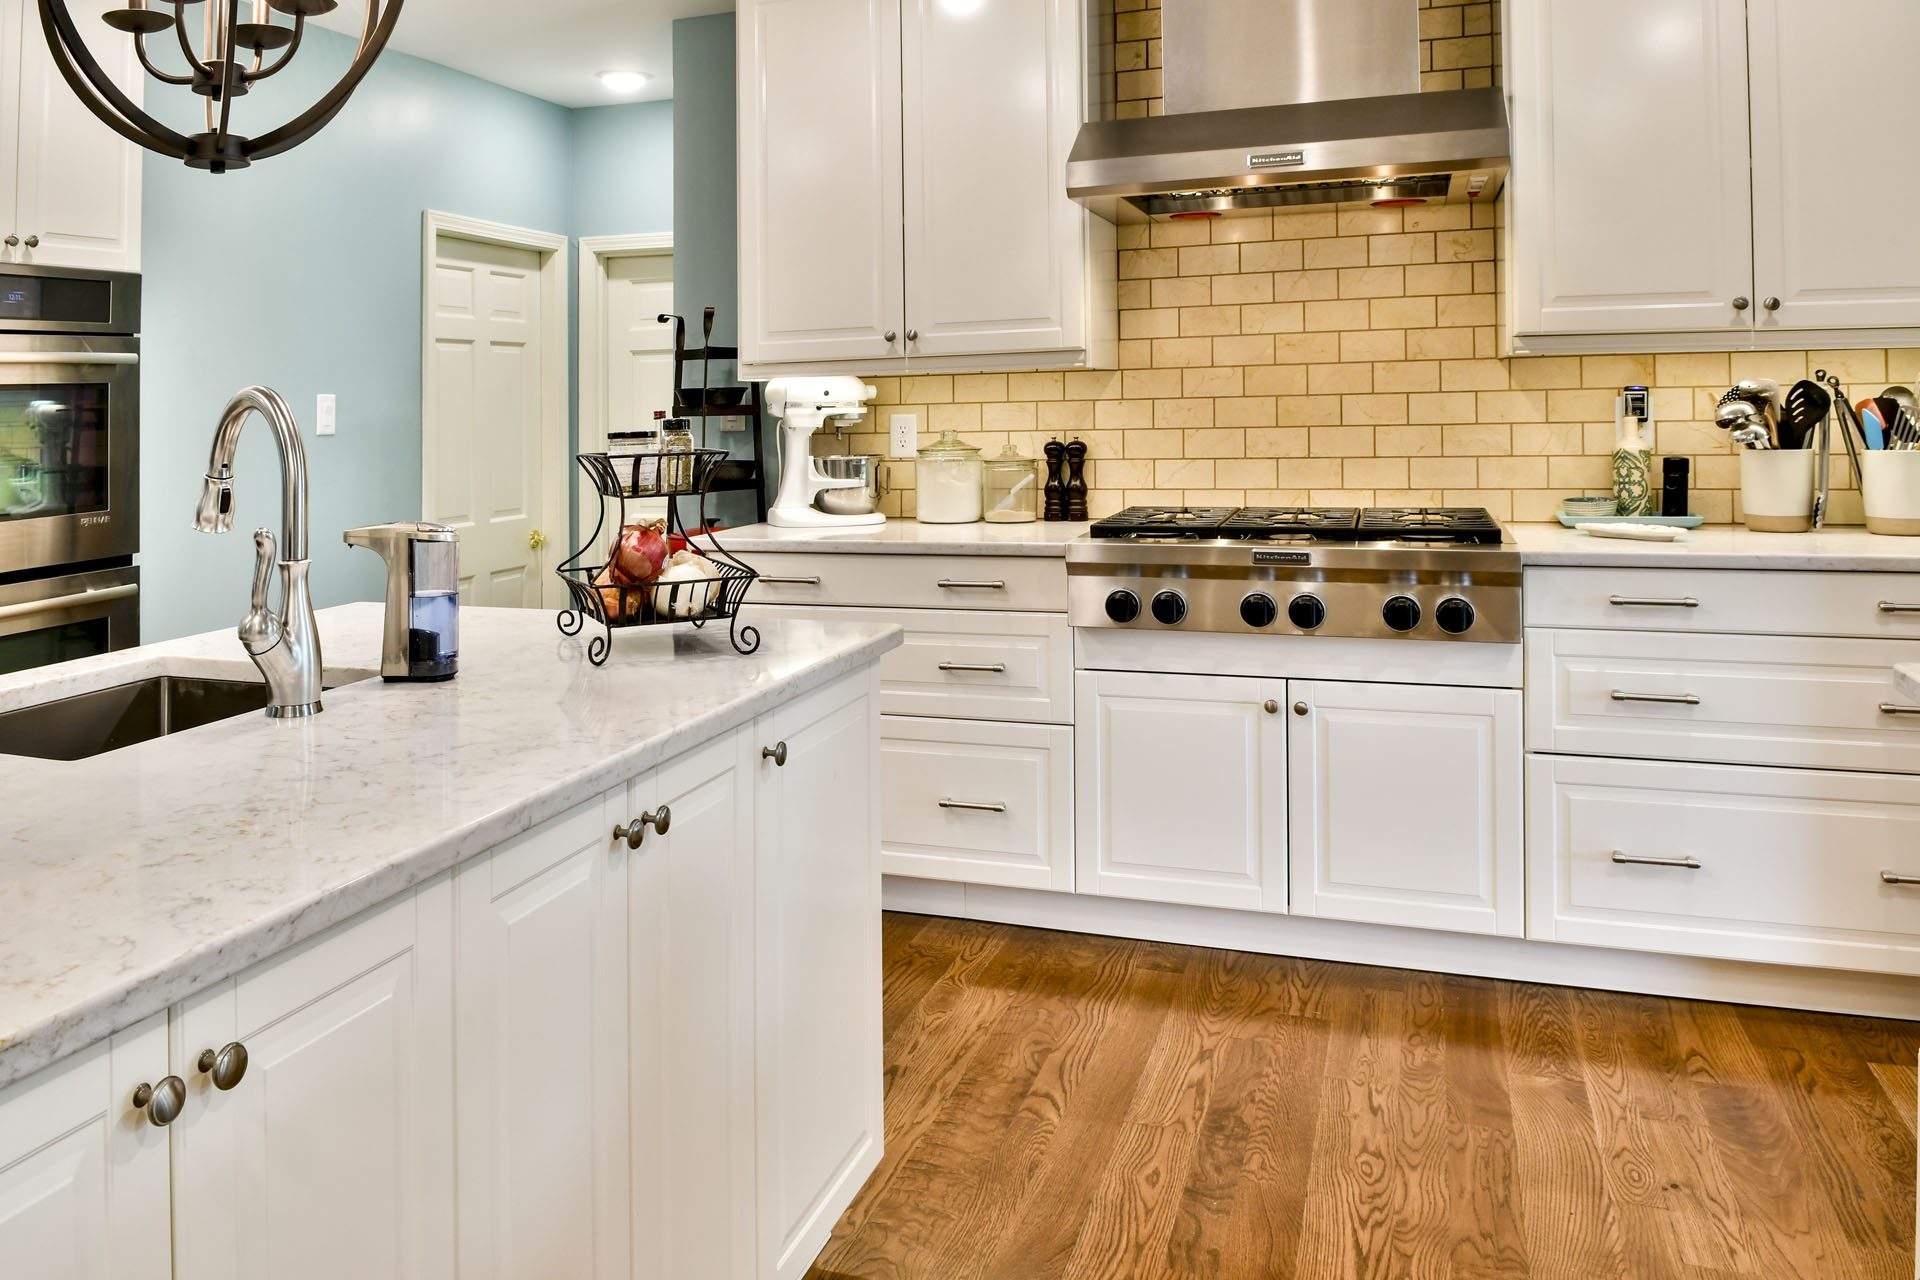 Louisville Interior Designer, Louisville Renovation Designer, Kitchen Renovation, Kitchen Design, White Kitchen Cabinets, Granite Countertops, Subway Tile Backsplash, Stainless Appliances, Kitchen Island, Glass Kitchen Cabinet Doors, Hardwood Floors, Stainless Apron Front Sink, Kitchen Lighting